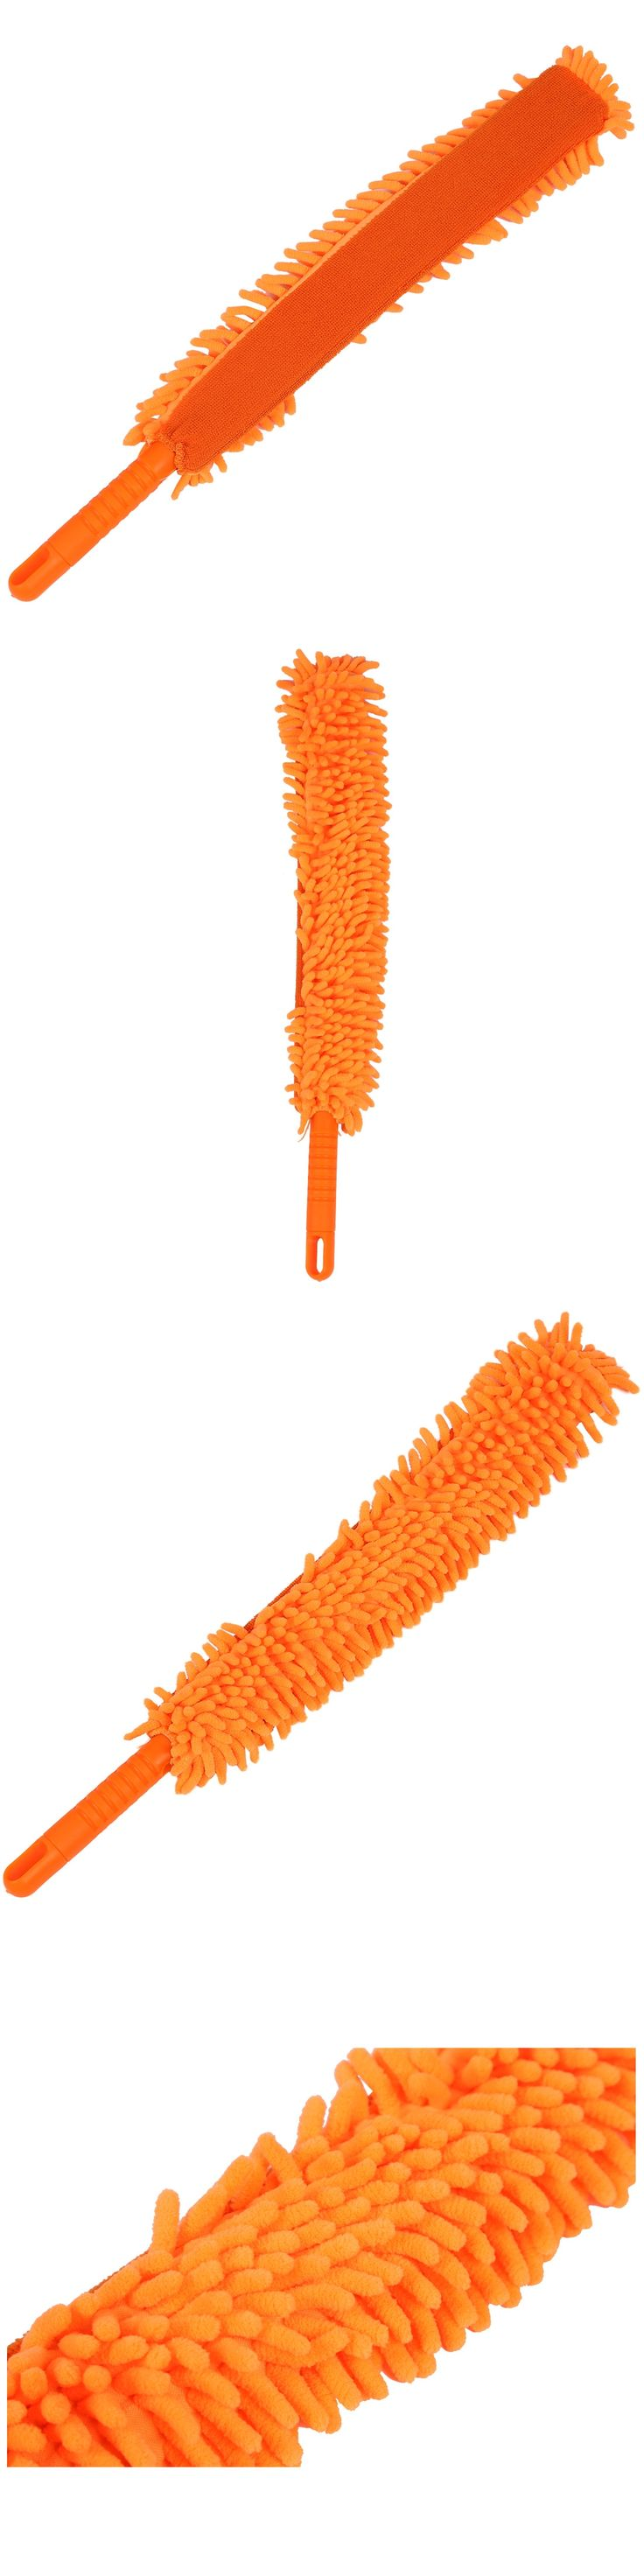 Flexible Chenille Bendable minifiber Cleaning Duster Brush Random Color